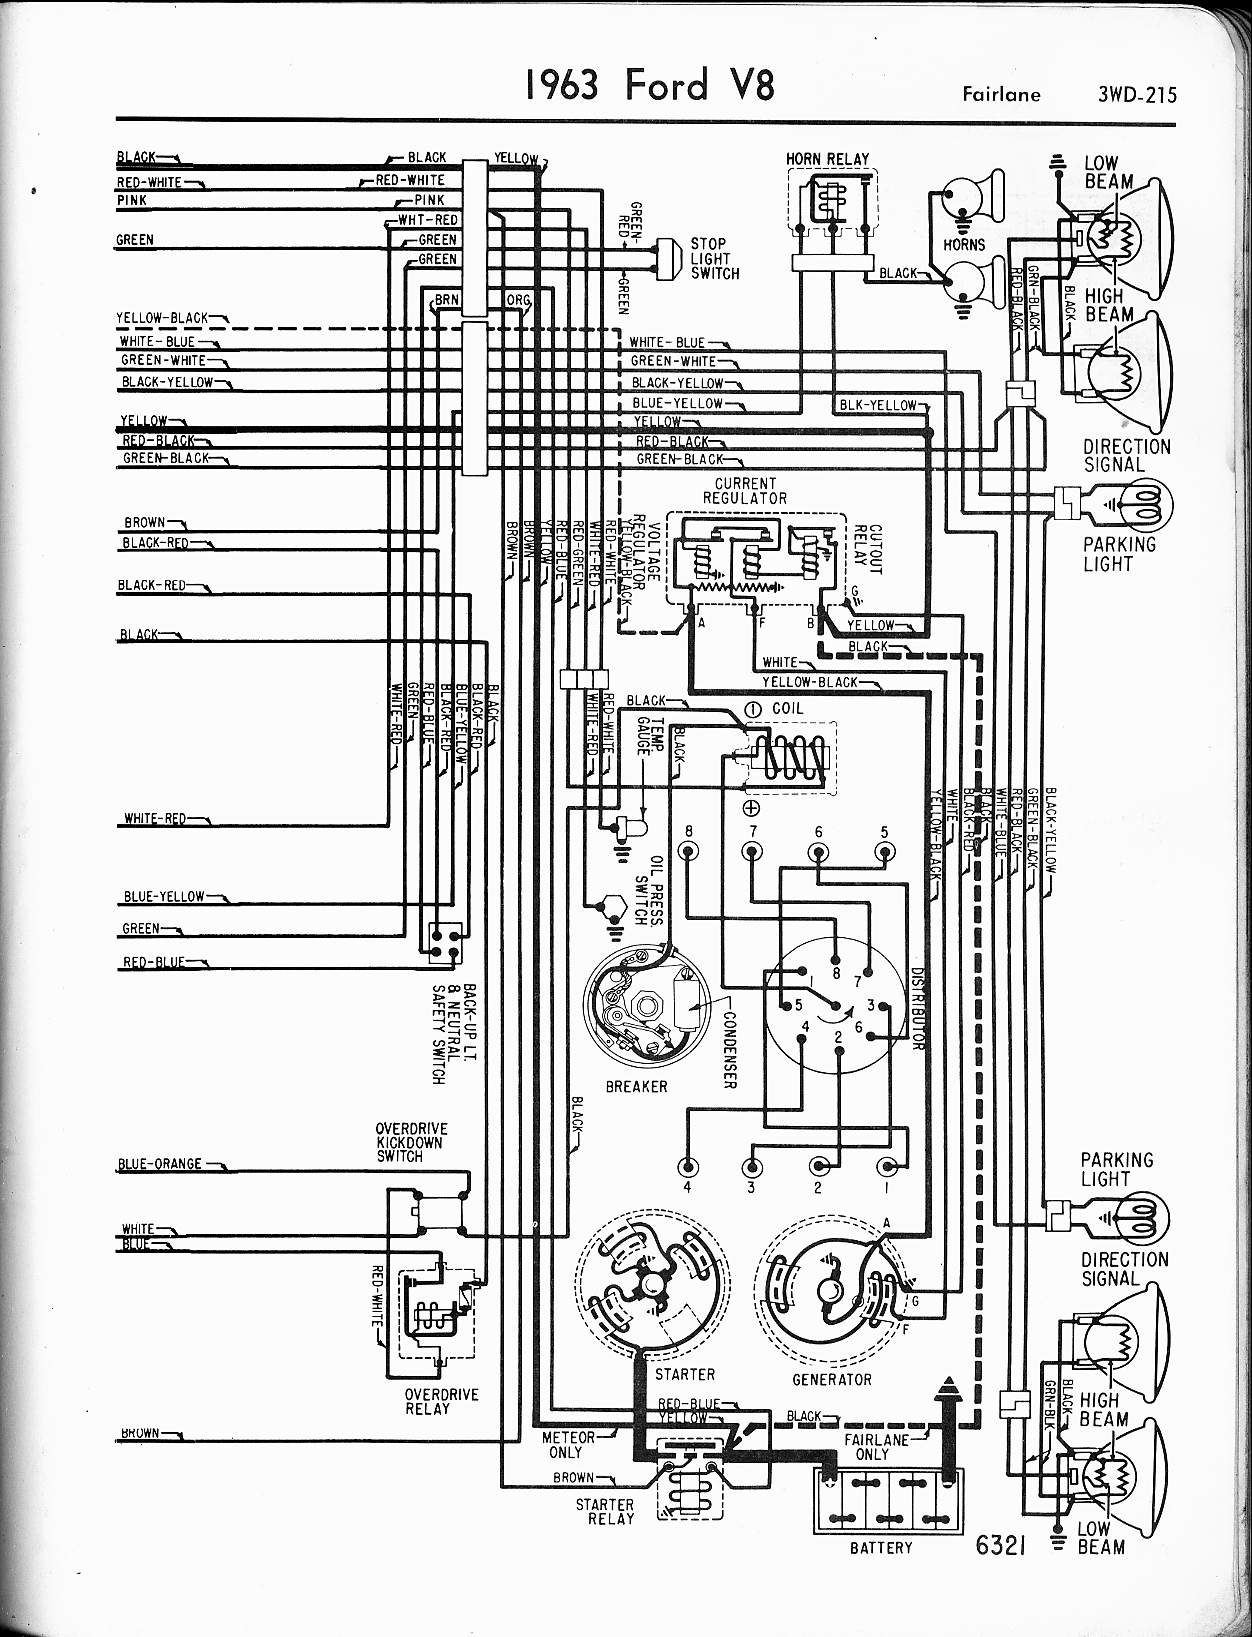 1964 Ford Econoline Van Wiring Diagram Worksheet And 1988 E150 Galaxie Radio Schematics Diagrams U2022 Rh Parntesis Co 350 E 150